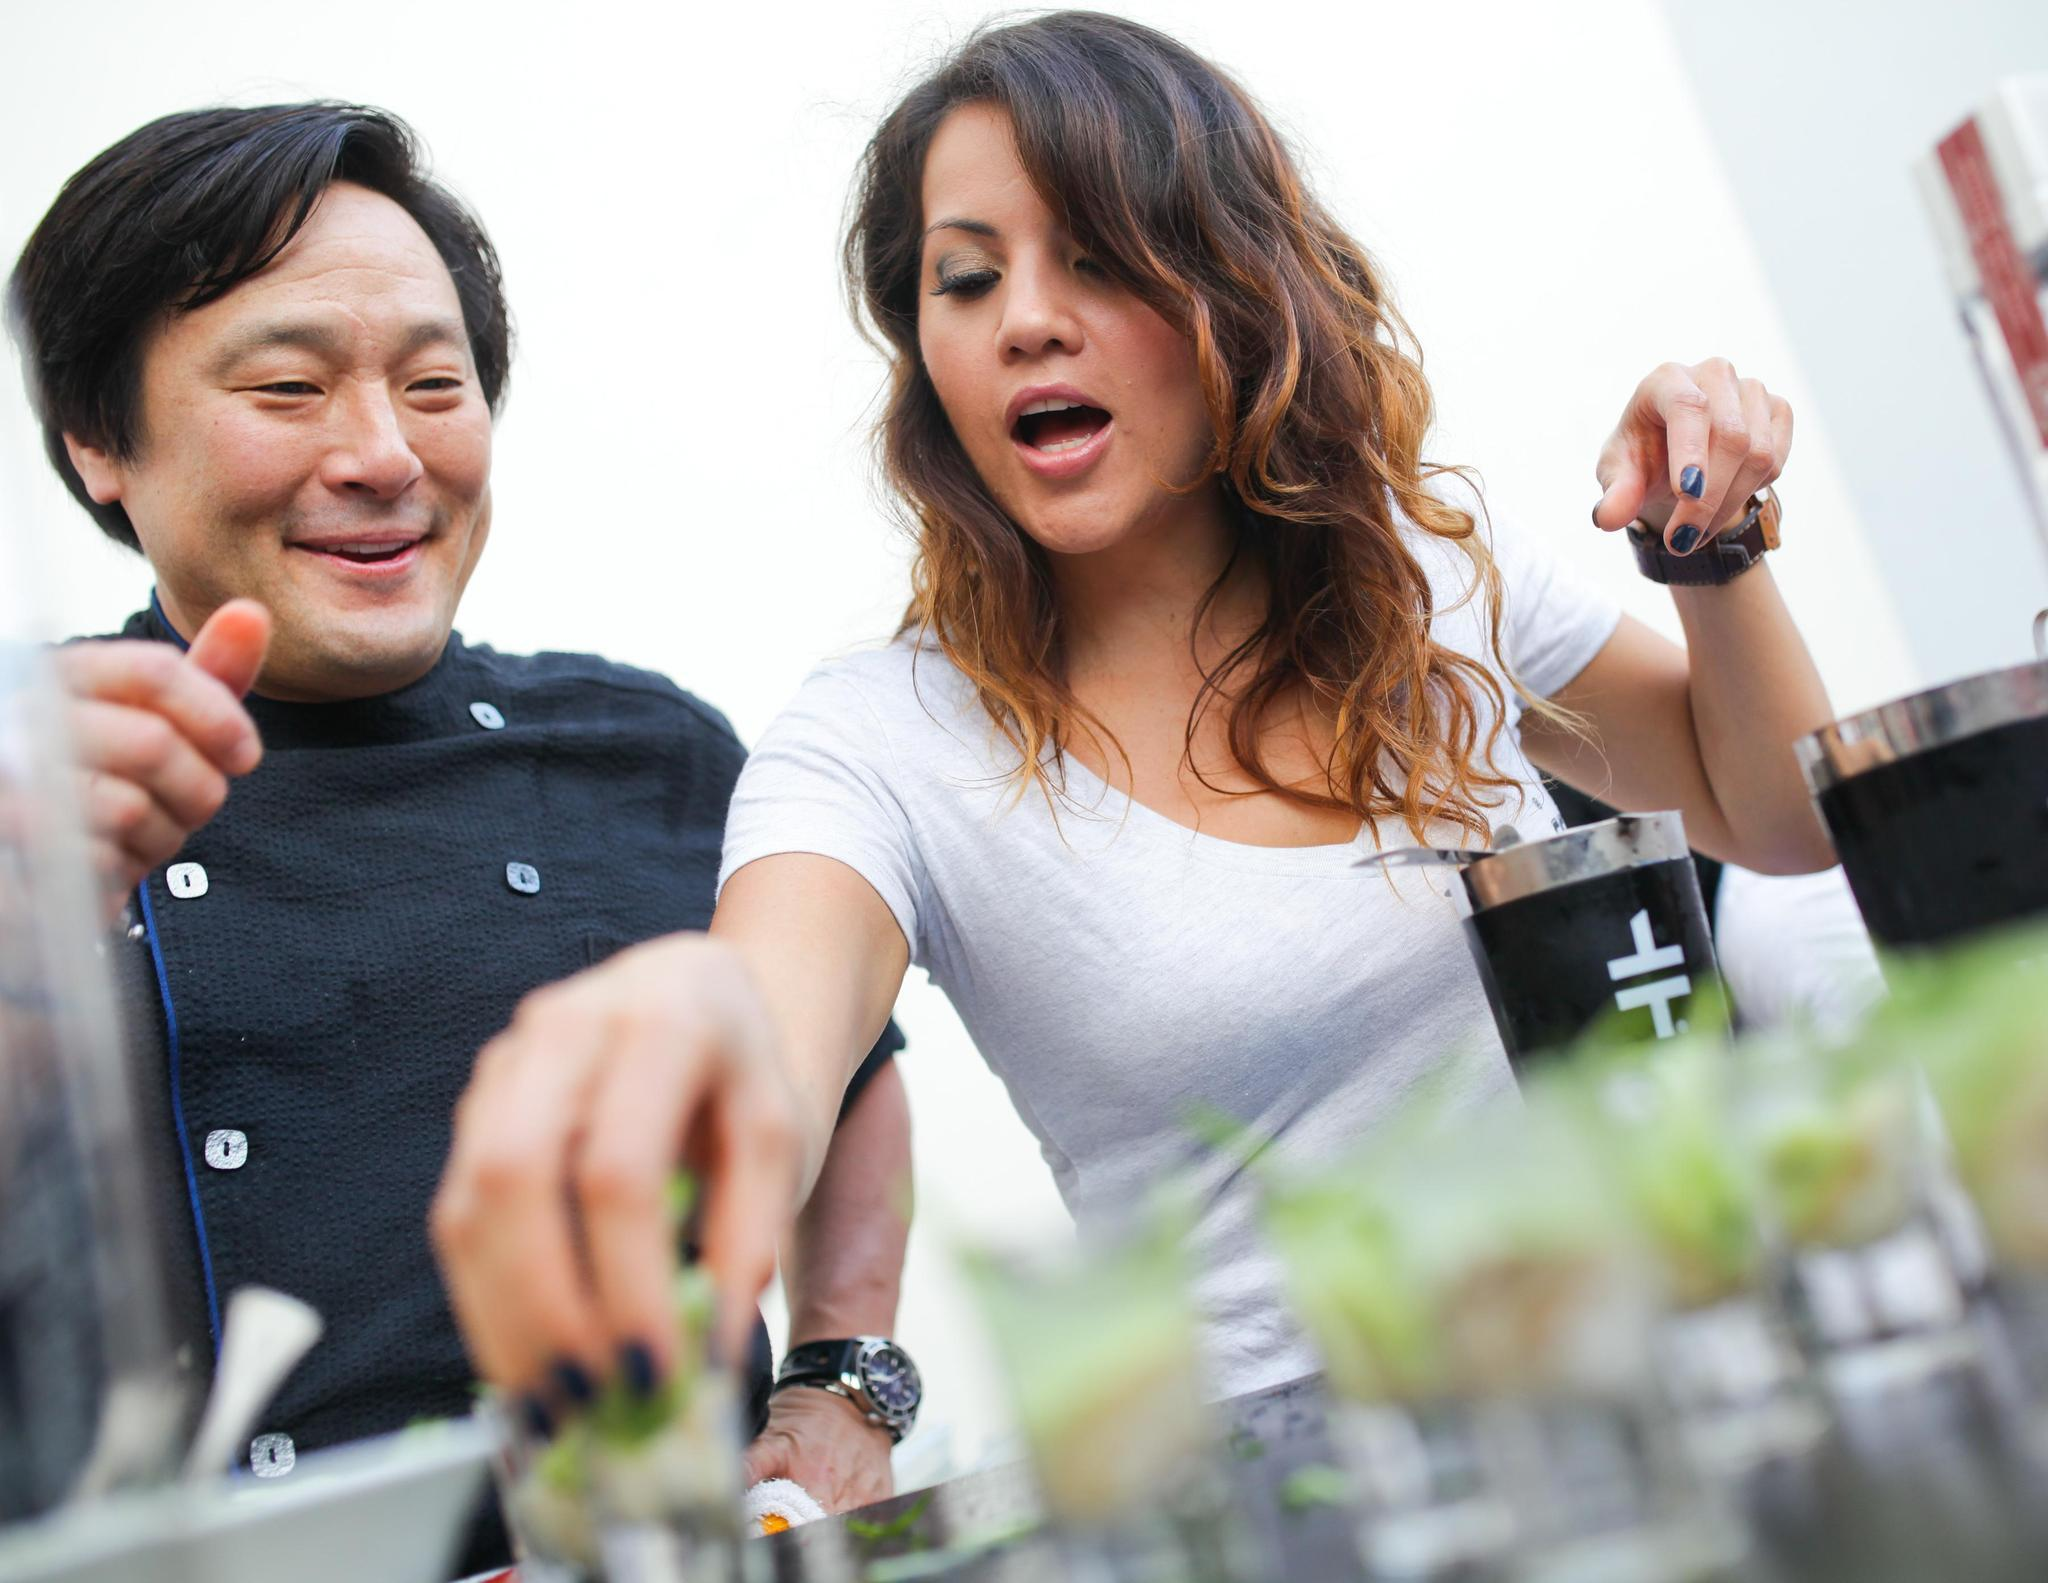 Celeb-spotting at SoBe Wine and Food Festival - Ming Tsai